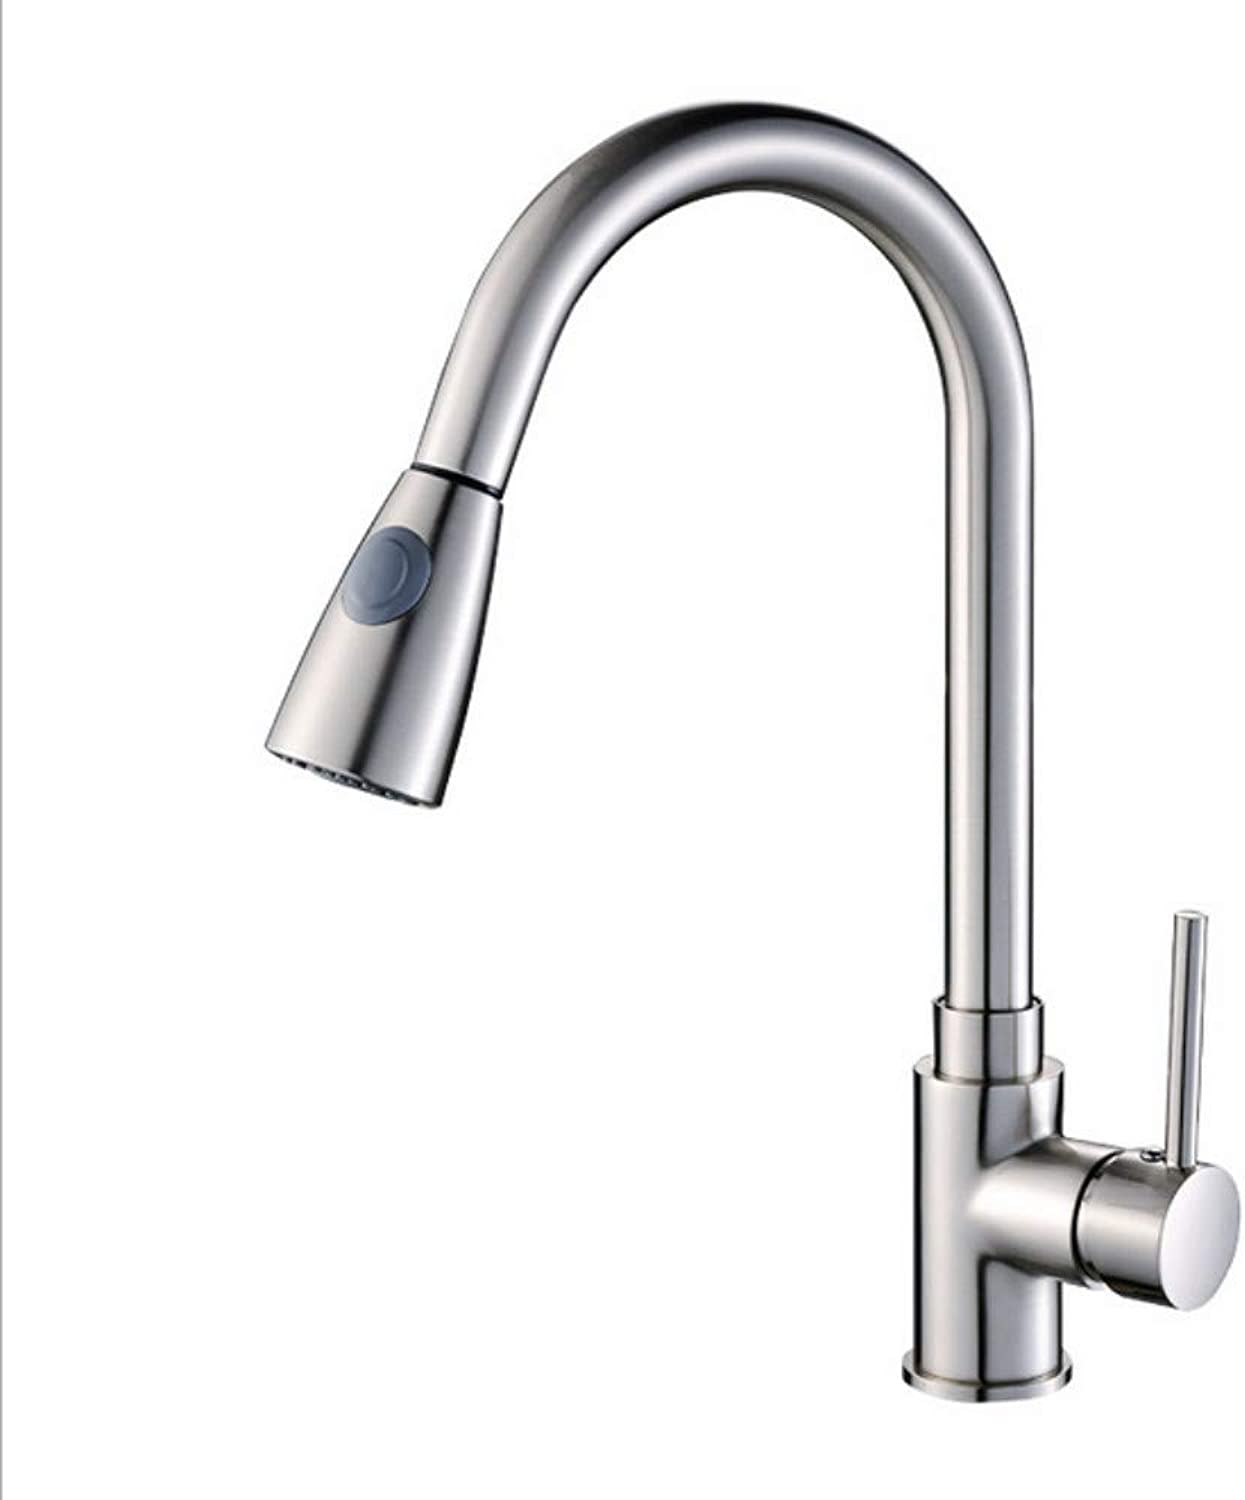 Xiujie Faucet Kitchen Faucet, Brushed Faucet, Hot and Cold Faucet, Sink Faucet